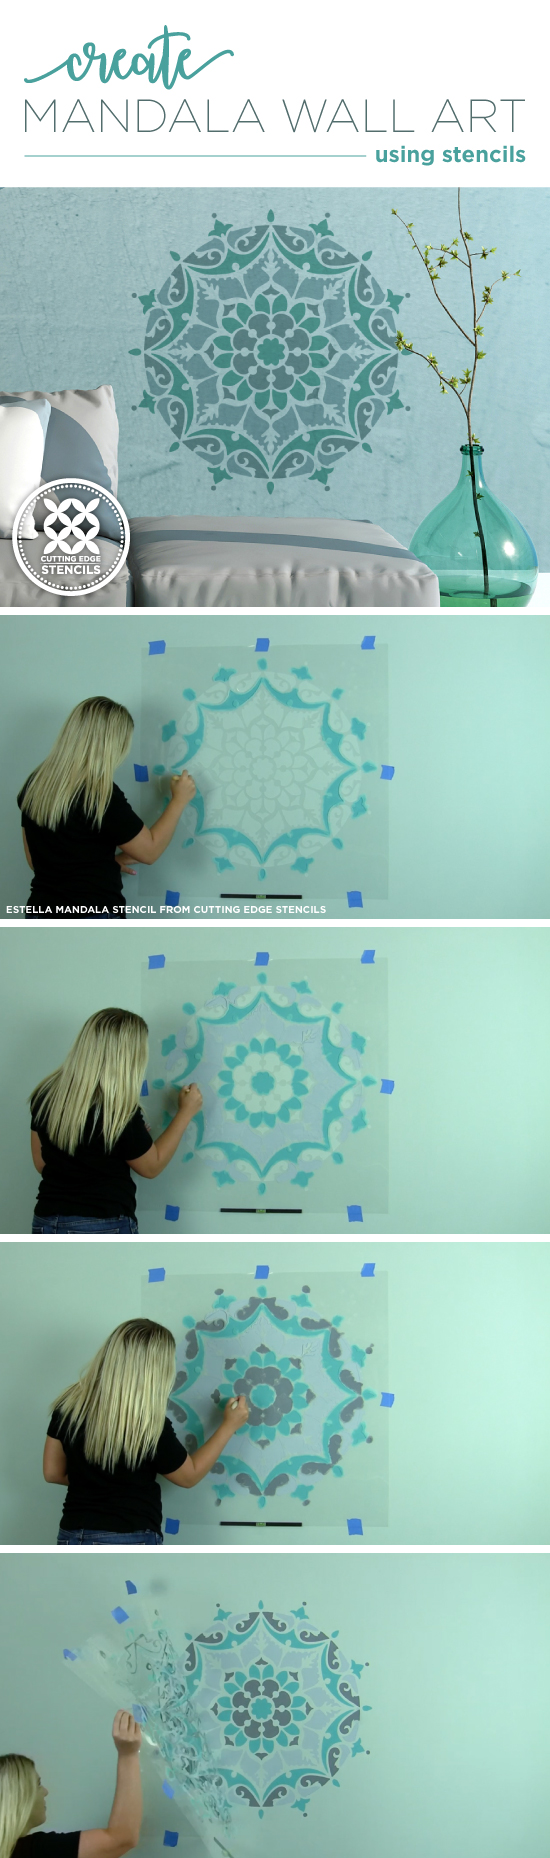 Cutting Edge Stencils shares how to paint wall art using the Estella Mandala Stencil. http://www.cuttingedgestencils.com/estella-mandala-stencil-wall-stencils-designs.html